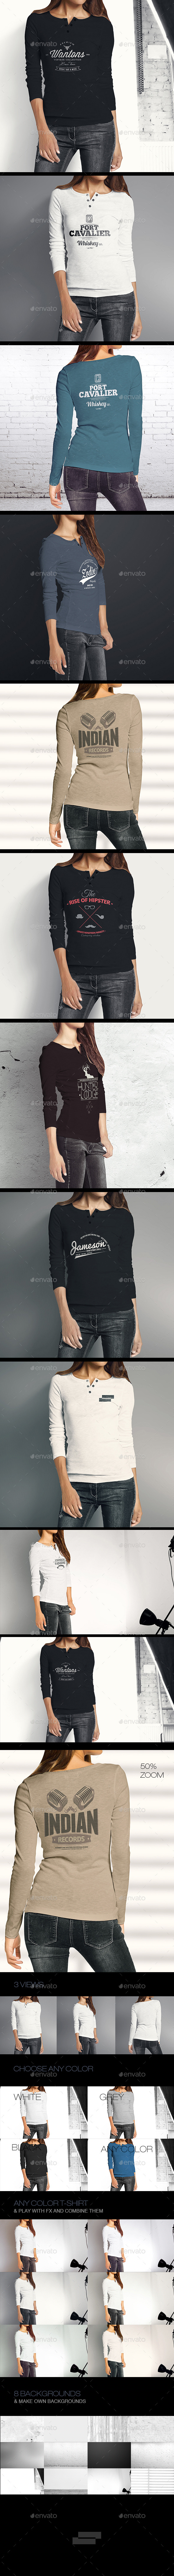 GraphicRiver Woman Longsleeve Shirt Mock-up 9610673